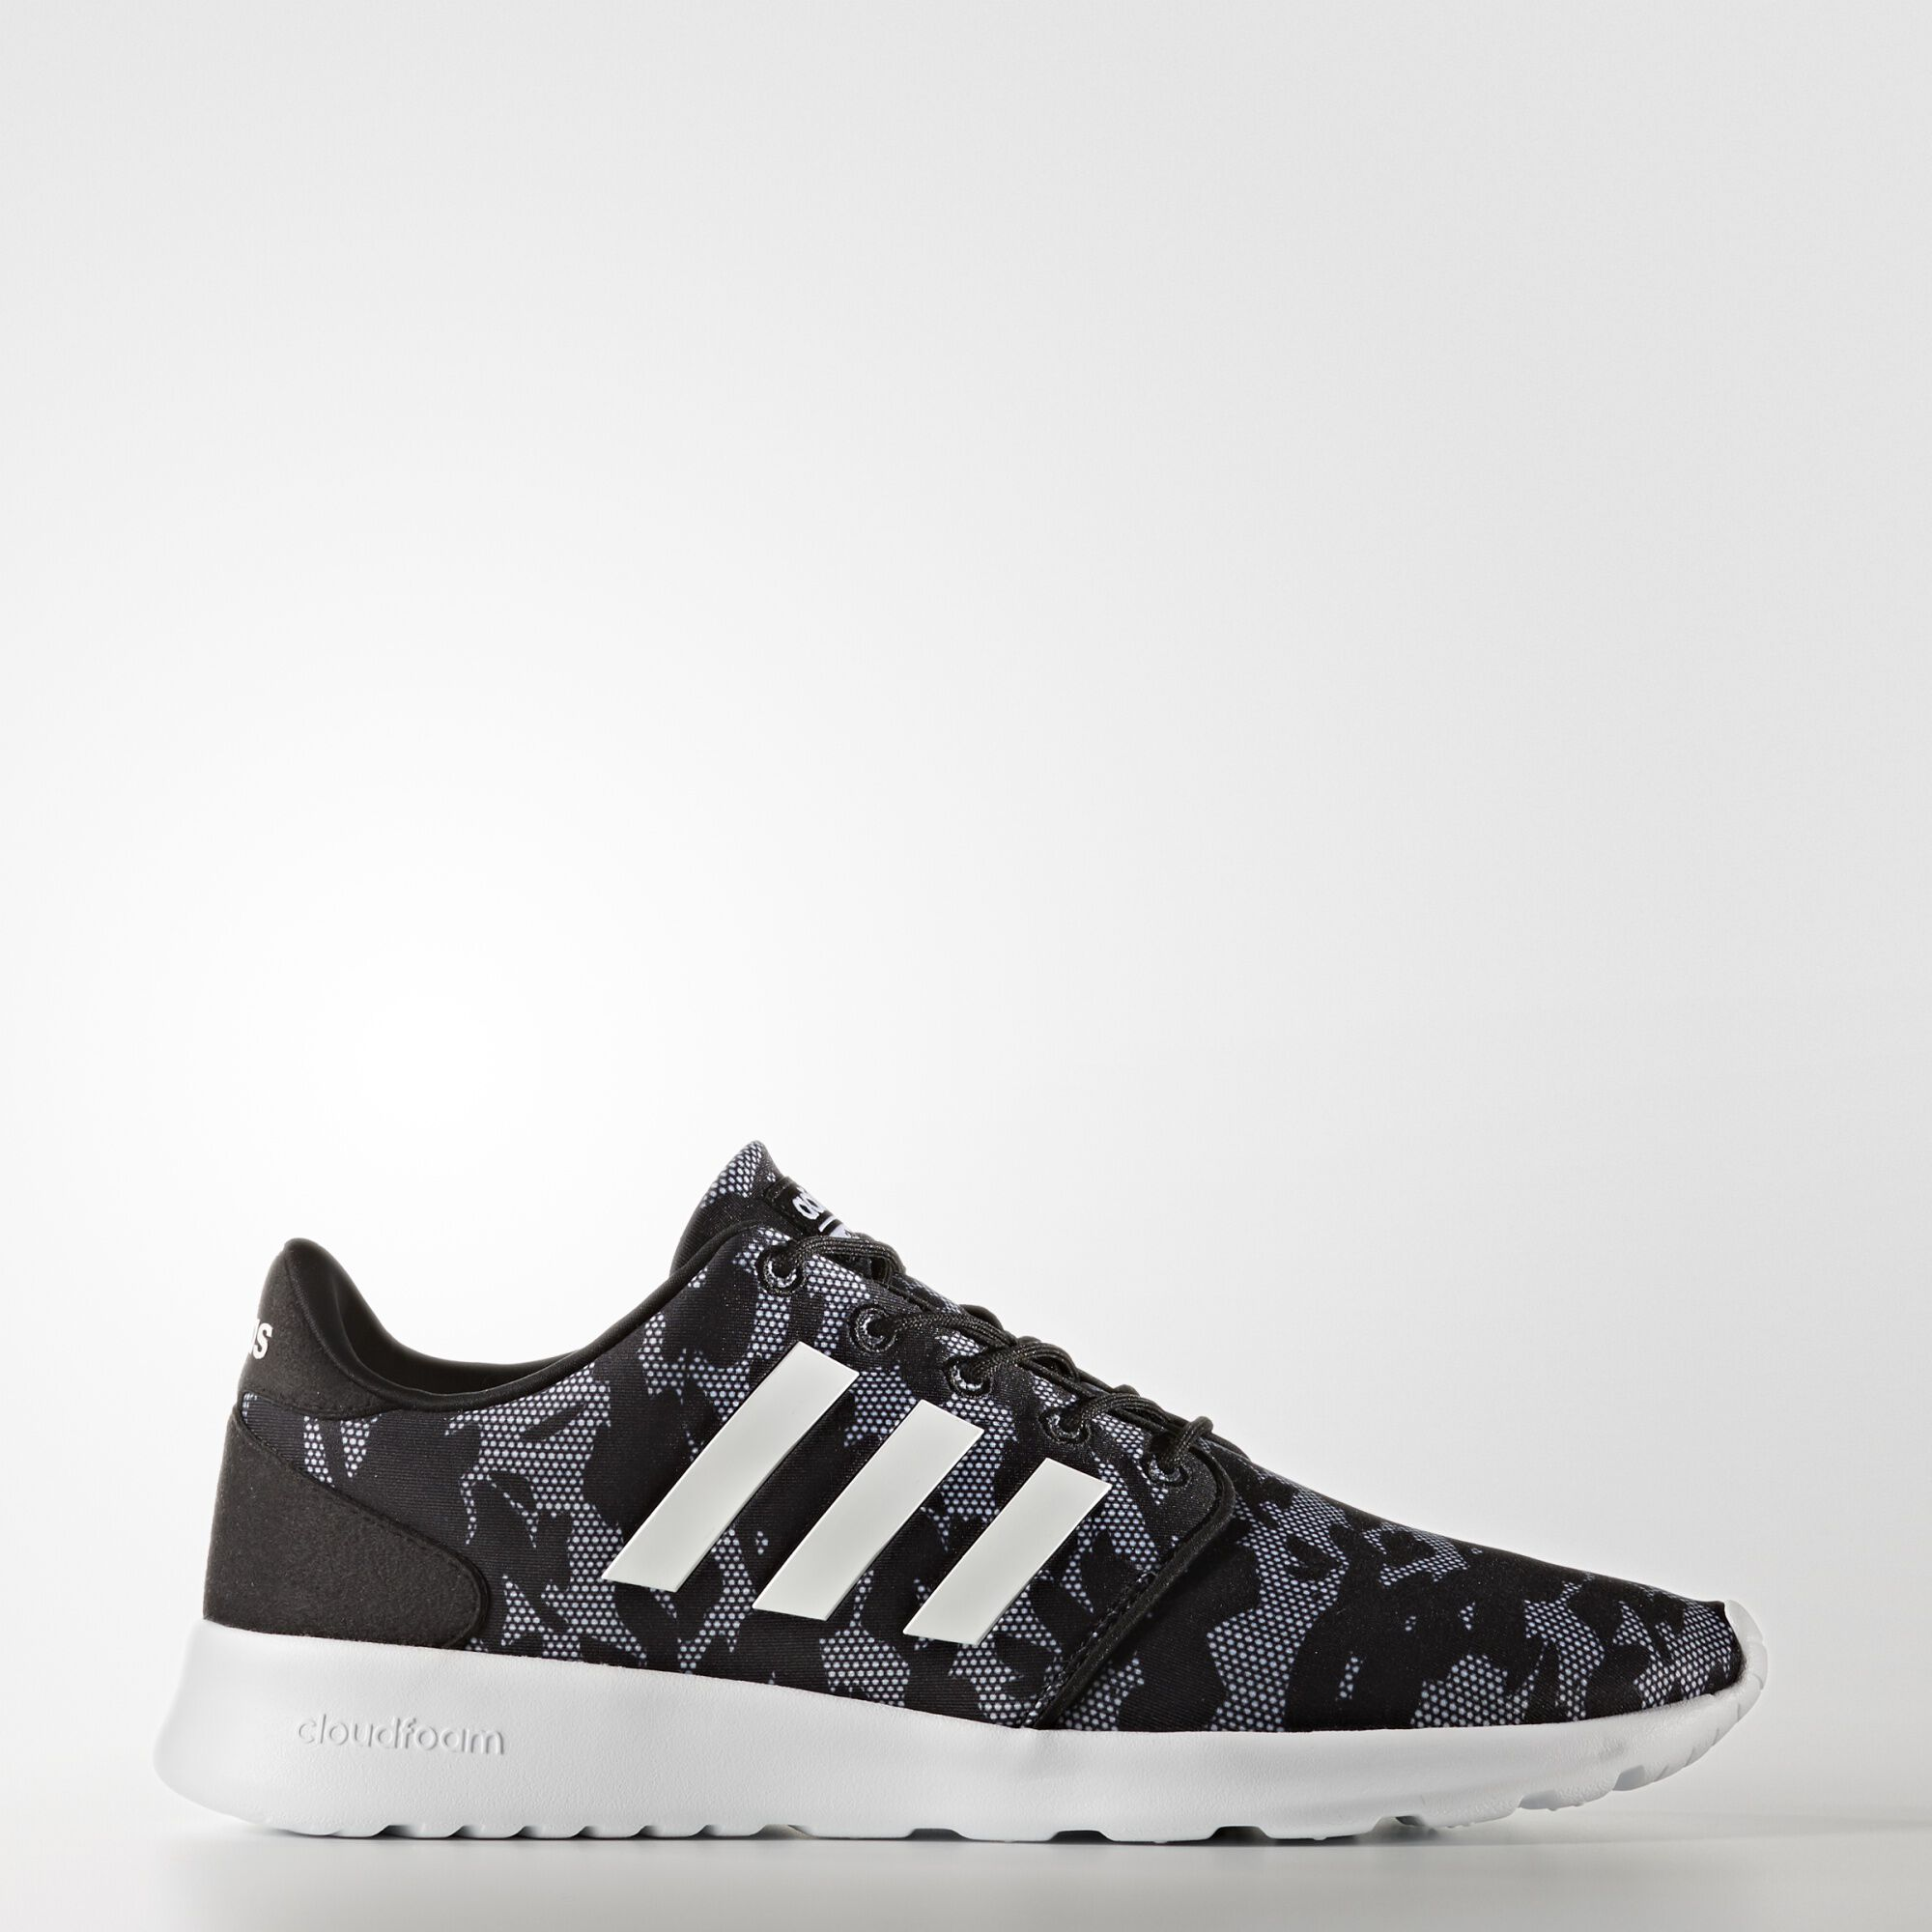 adidas cloudfoam qt racer shoes black adidas us. Black Bedroom Furniture Sets. Home Design Ideas